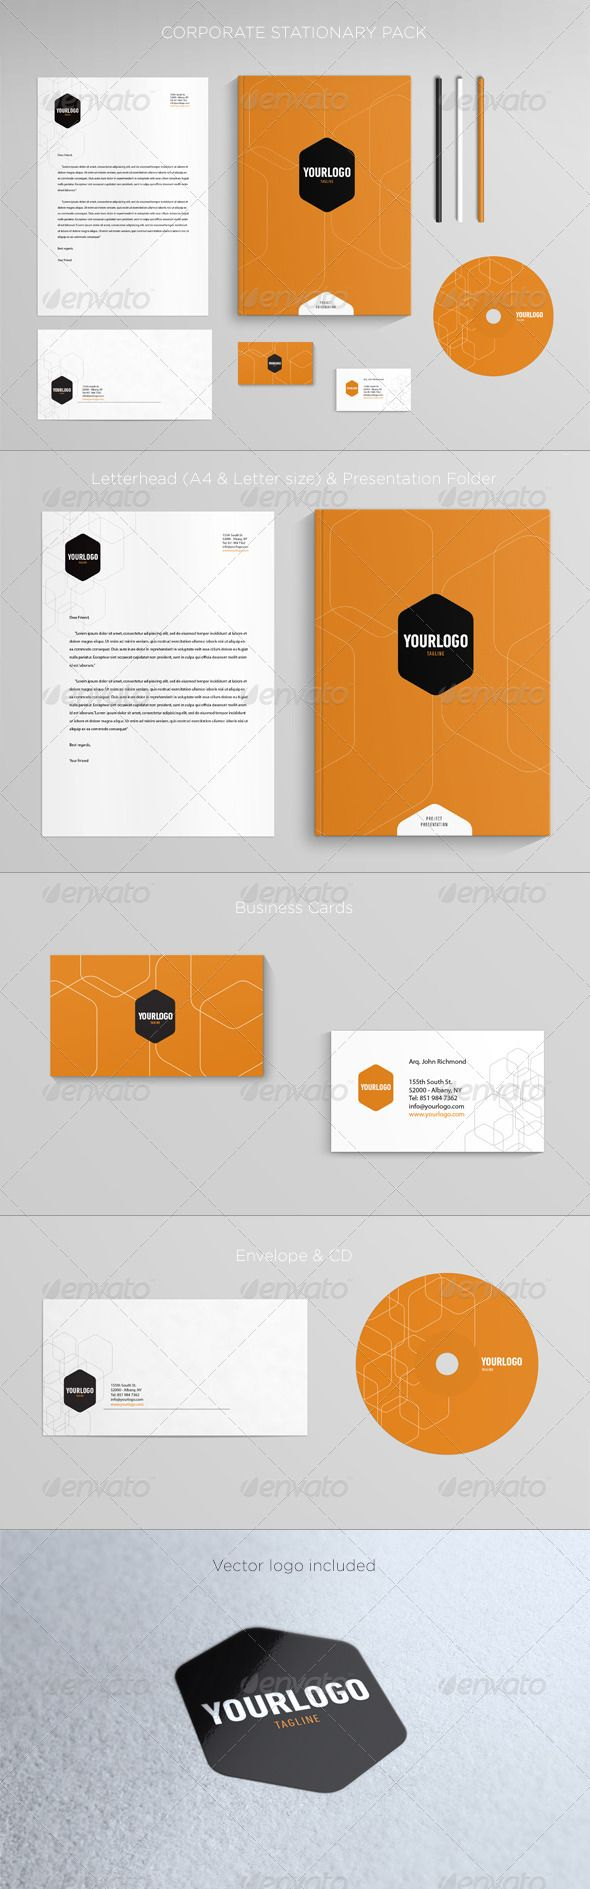 corporatestationary stationery print templates